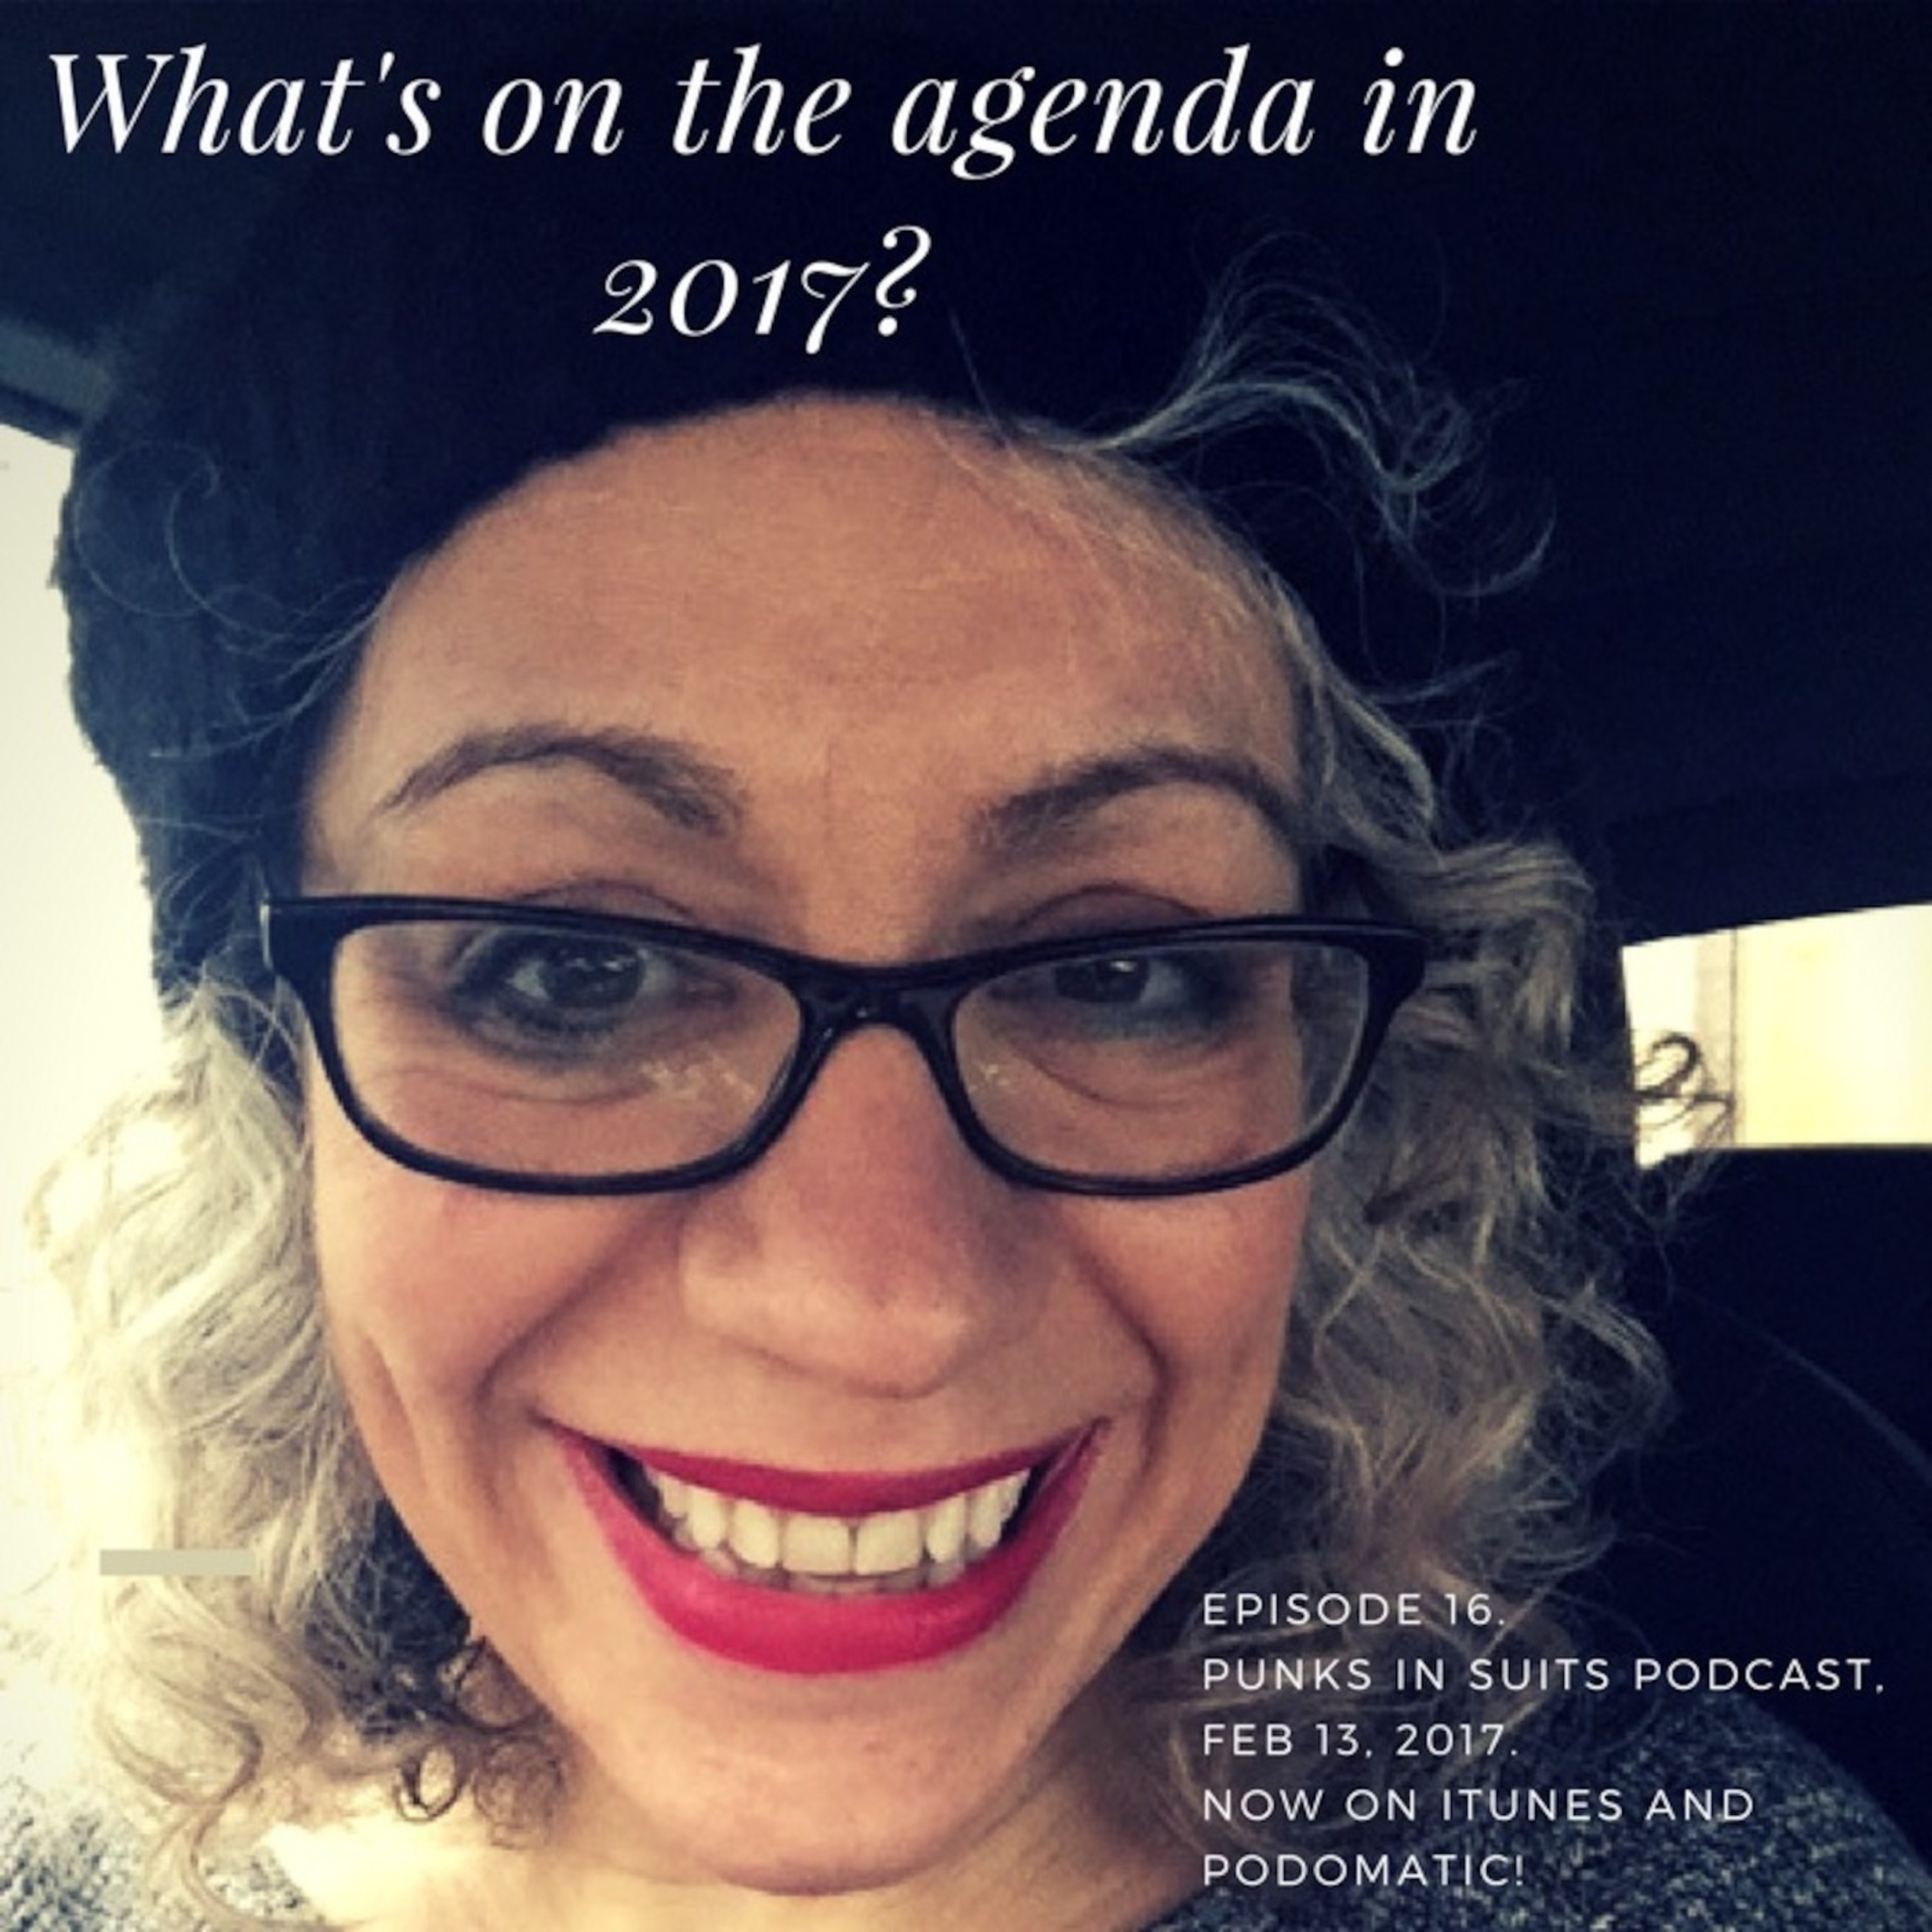 Episode 16: What's on the agenda in 2017?